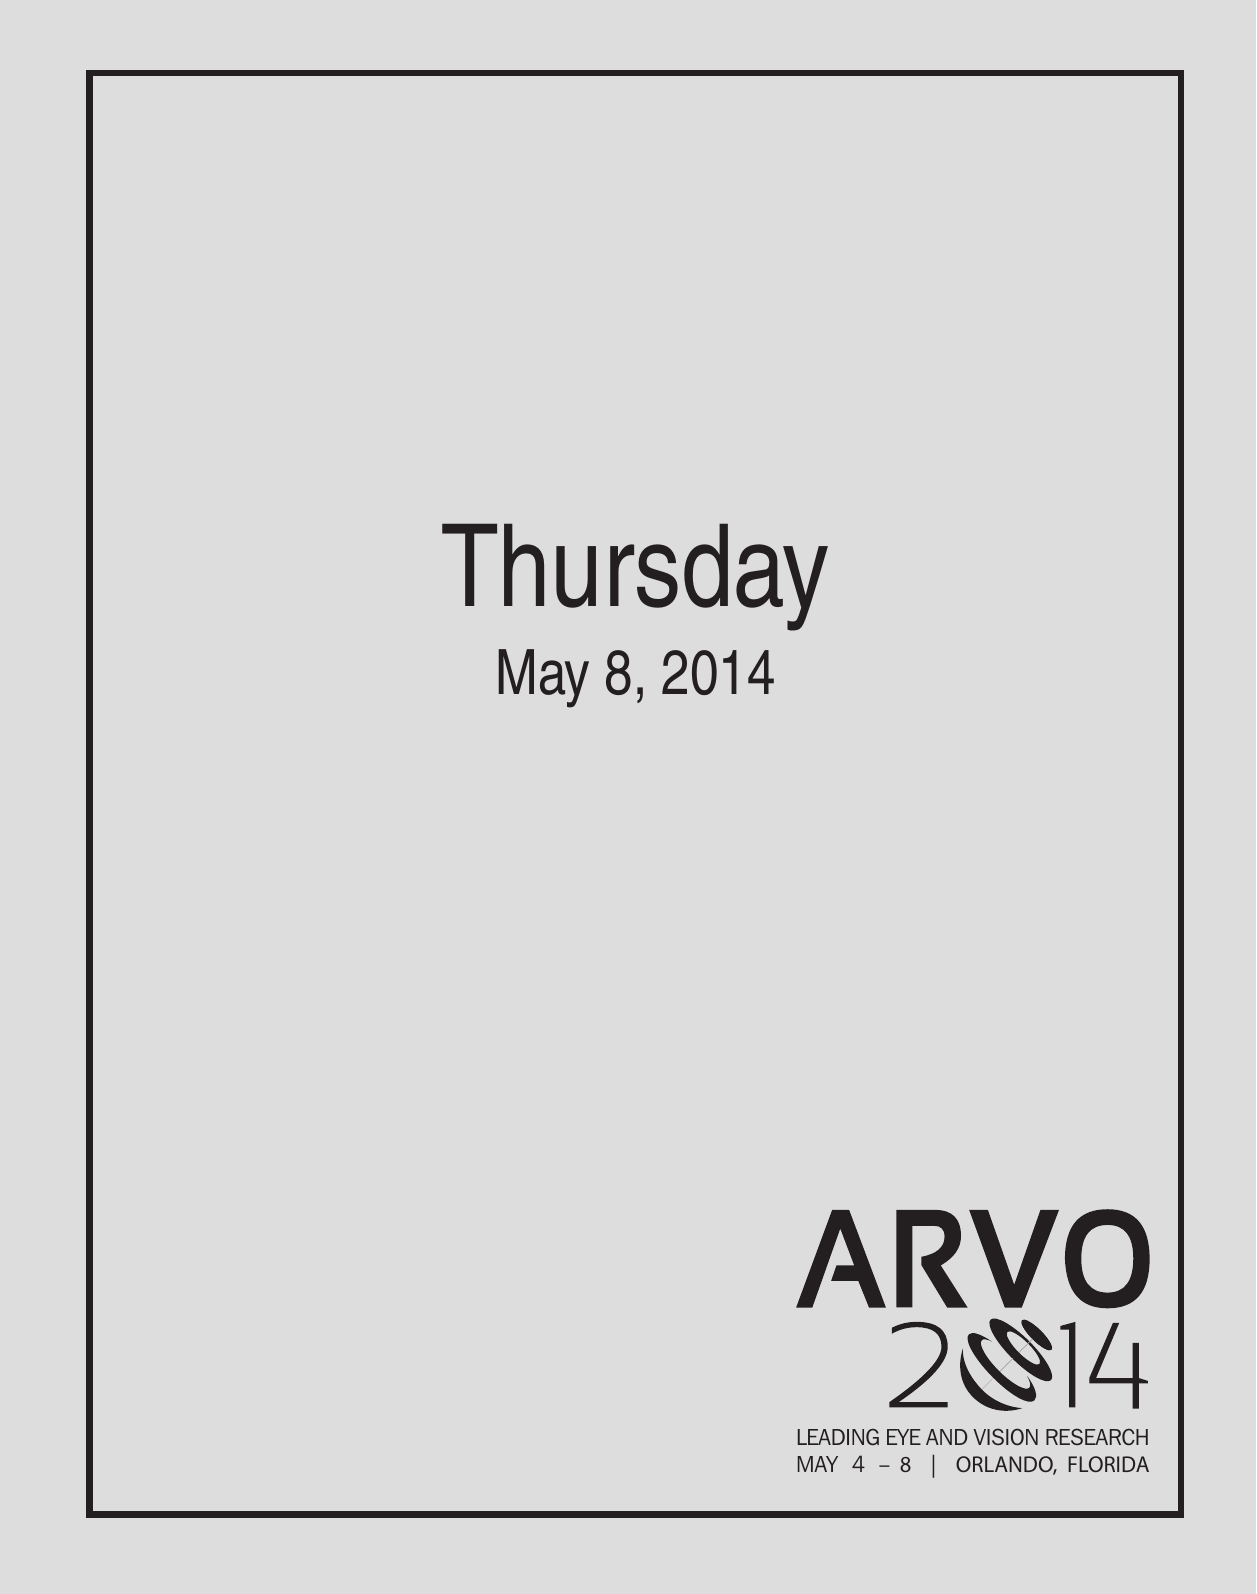 Thursday - The Association for Research in Vision and Ophthalmology